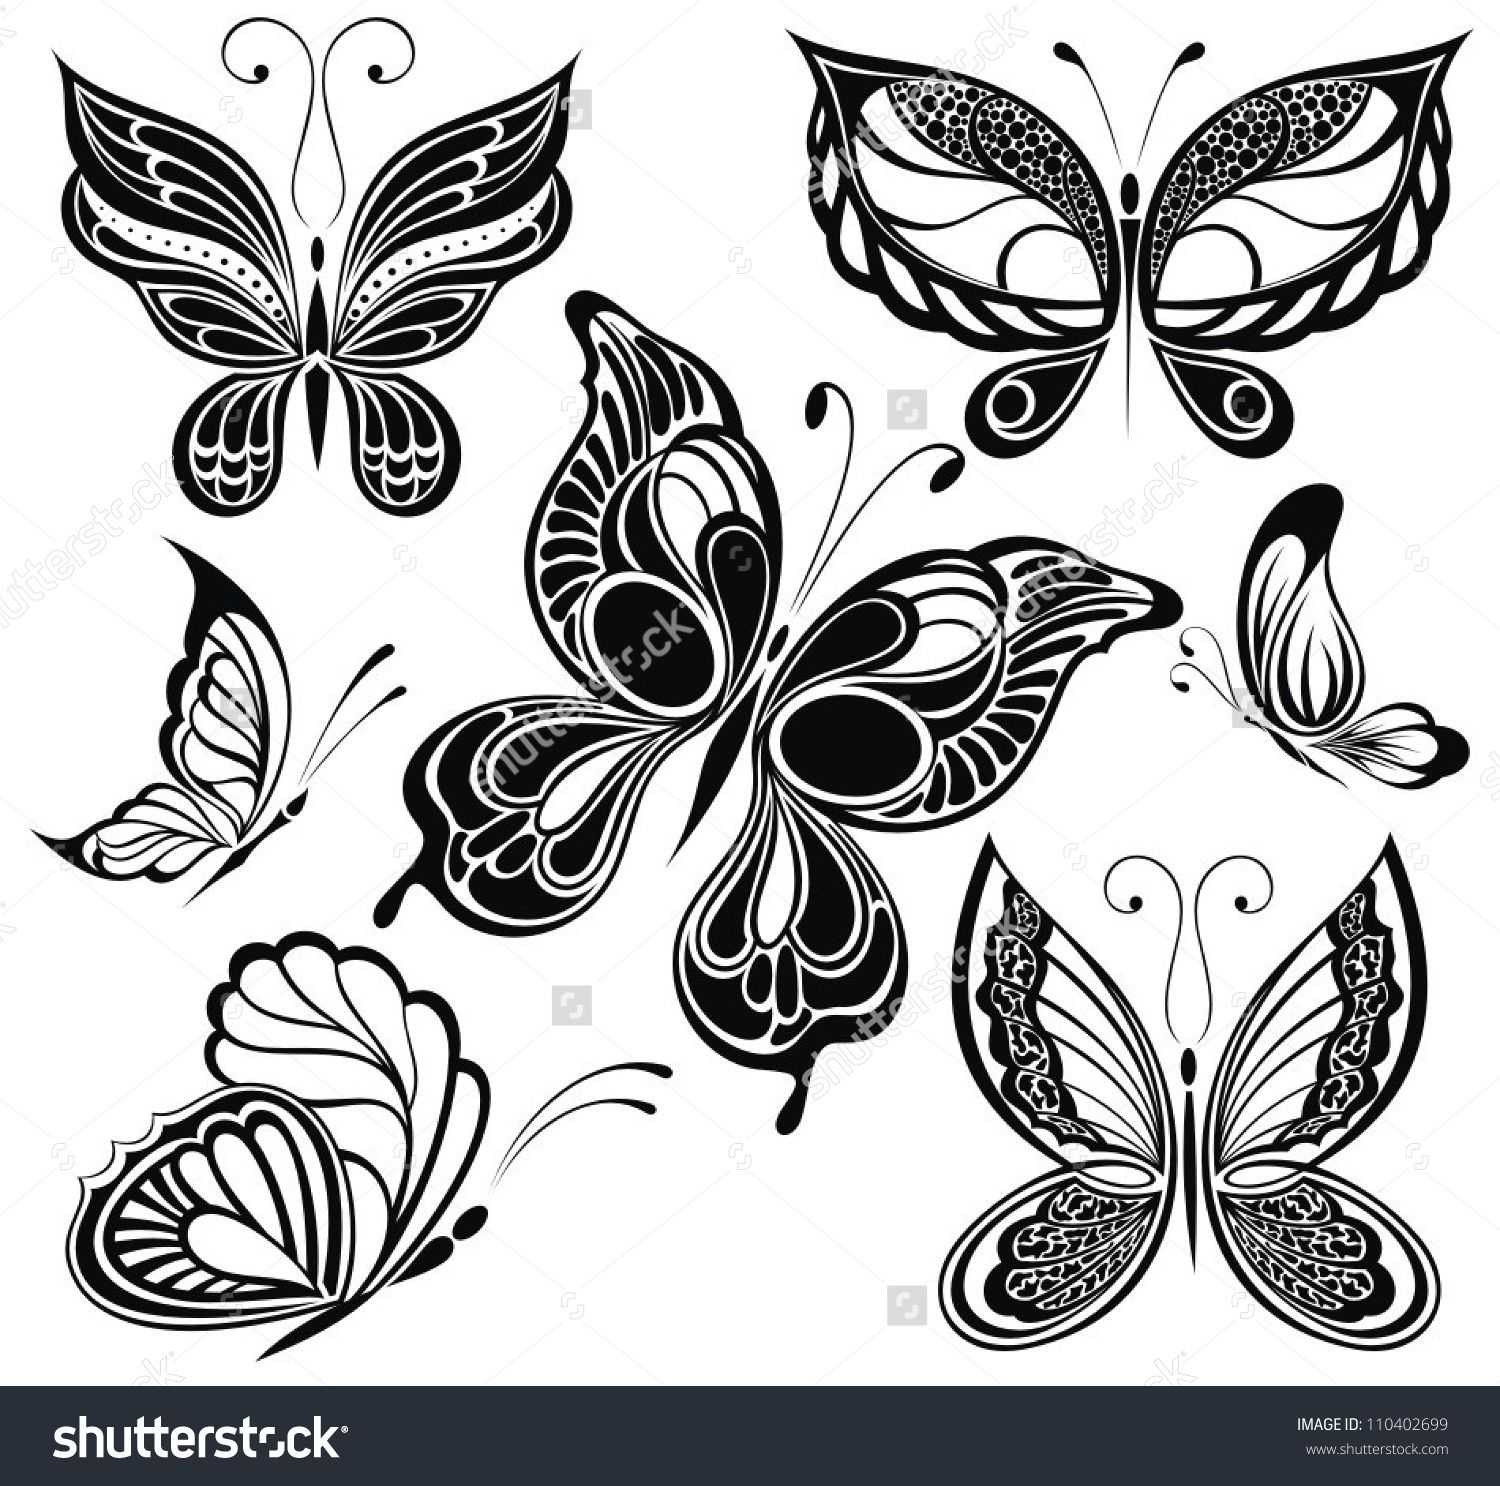 Tattoo Art Black And White: Butterfly Tattoo Stock Vectors & Vector Clip Art